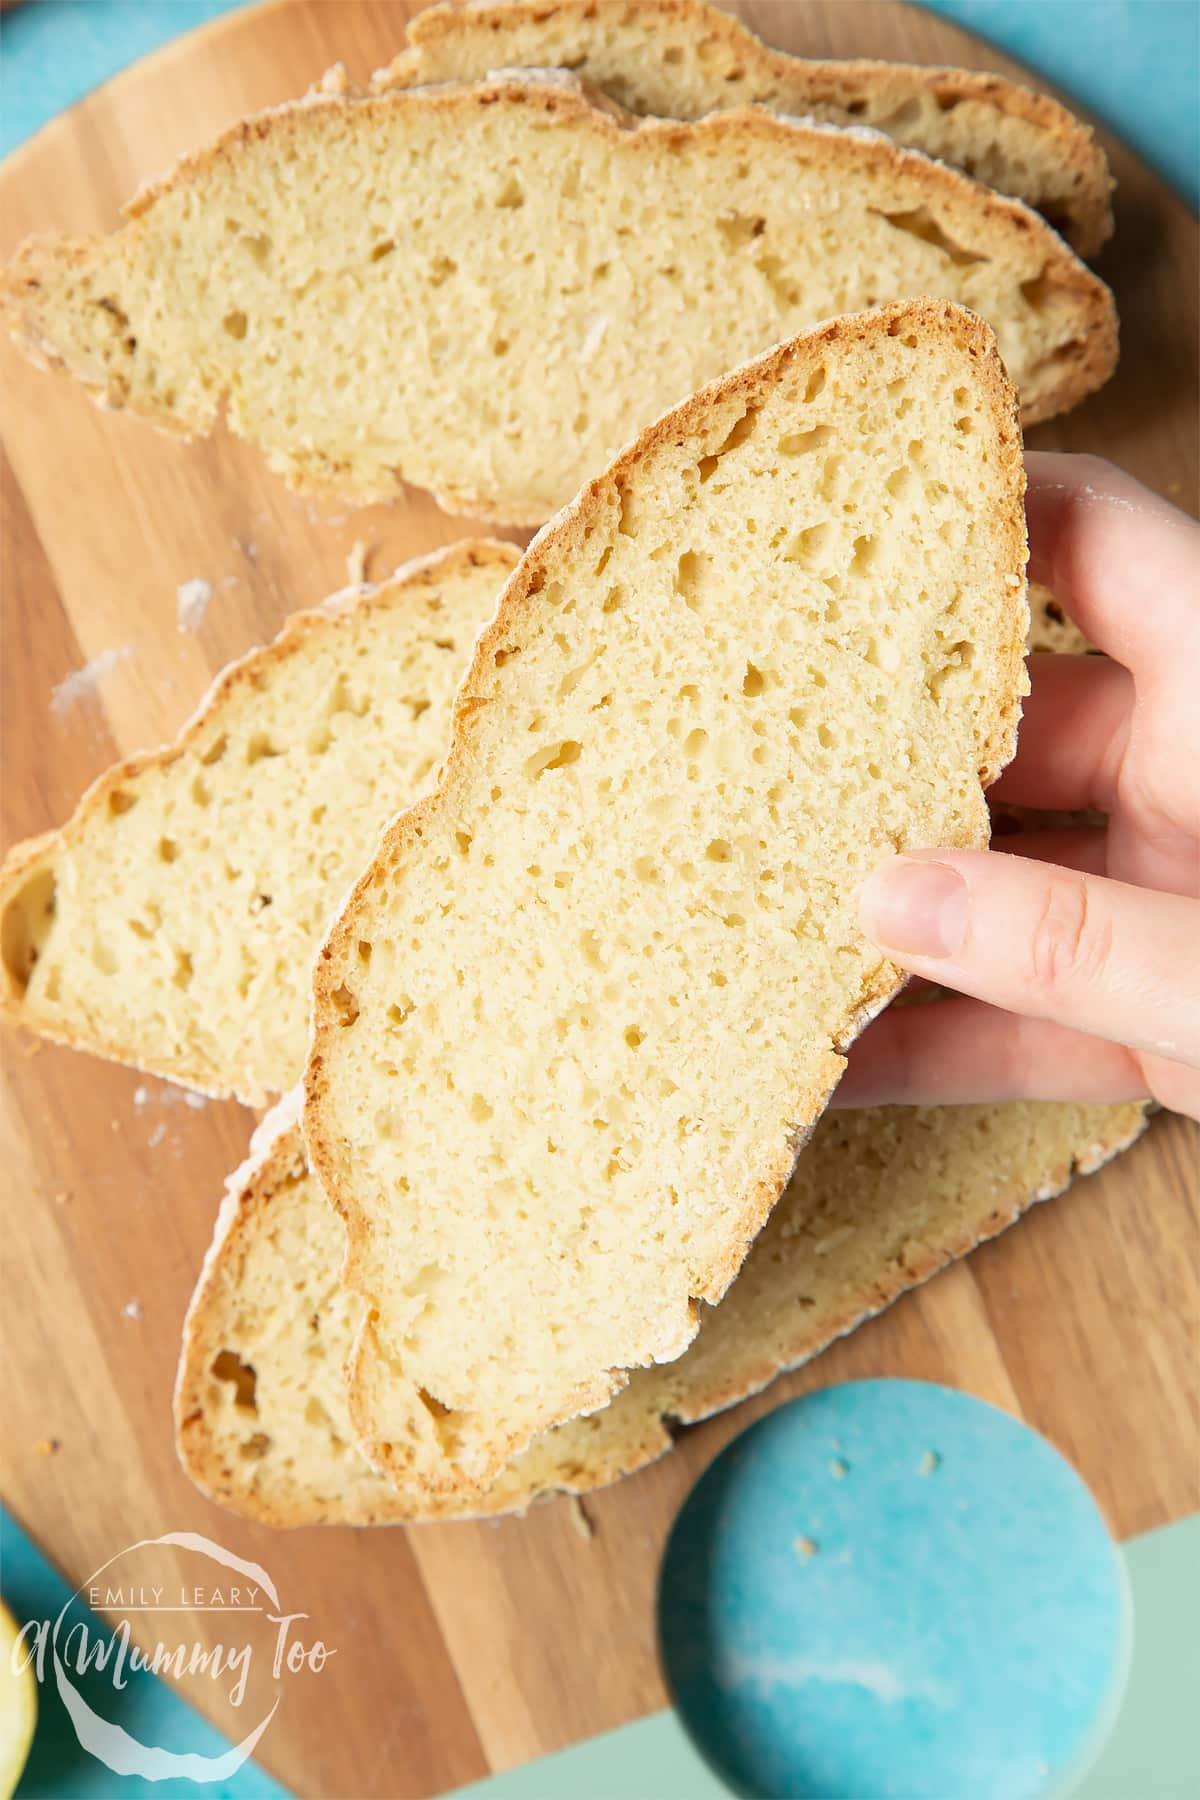 Vegan soda bread slices on a wooden board. A hand holds a slice.